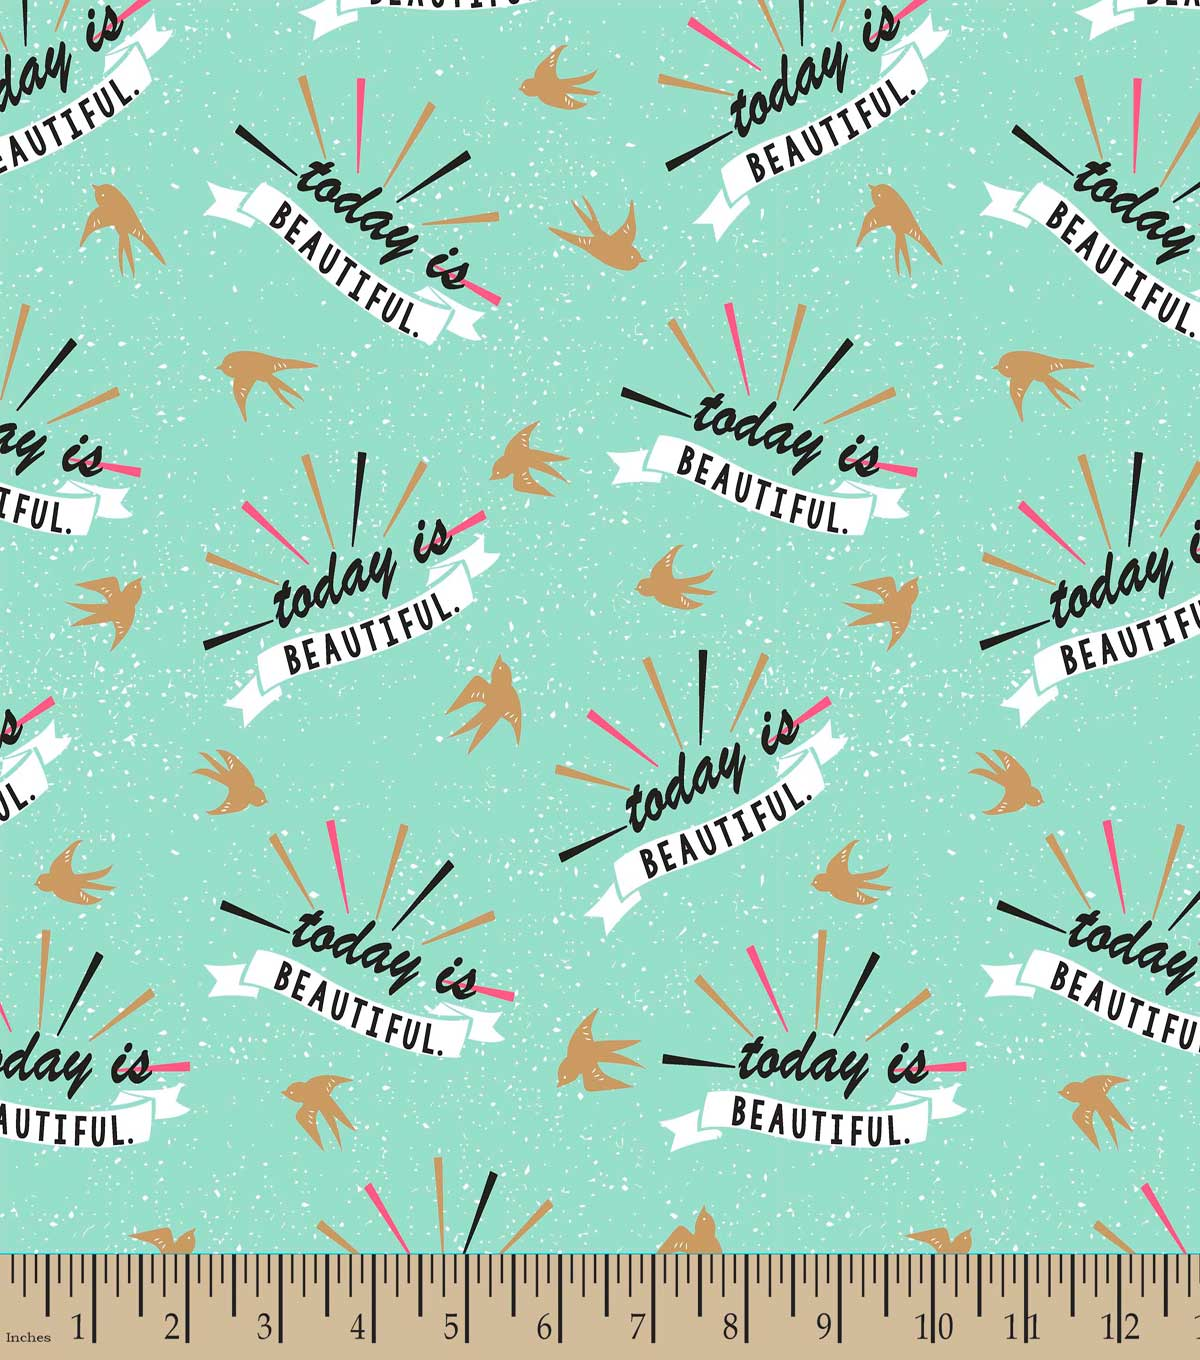 Today is Beautiful Print Fabric